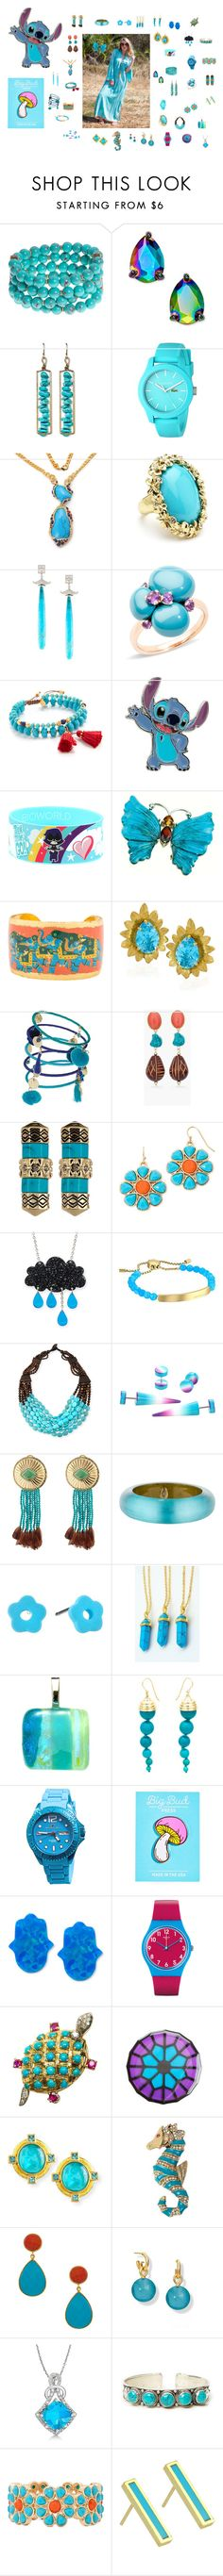 """""""The One"""" by thevintagecinderella ❤ liked on Polyvore featuring Lonna & Lilly, Kate Spade, Natasha Accessories, Lacoste, De Buman, Oscar de la Renta, Lydia Courteille, Pomellato, Chan Luu and Évocateur"""